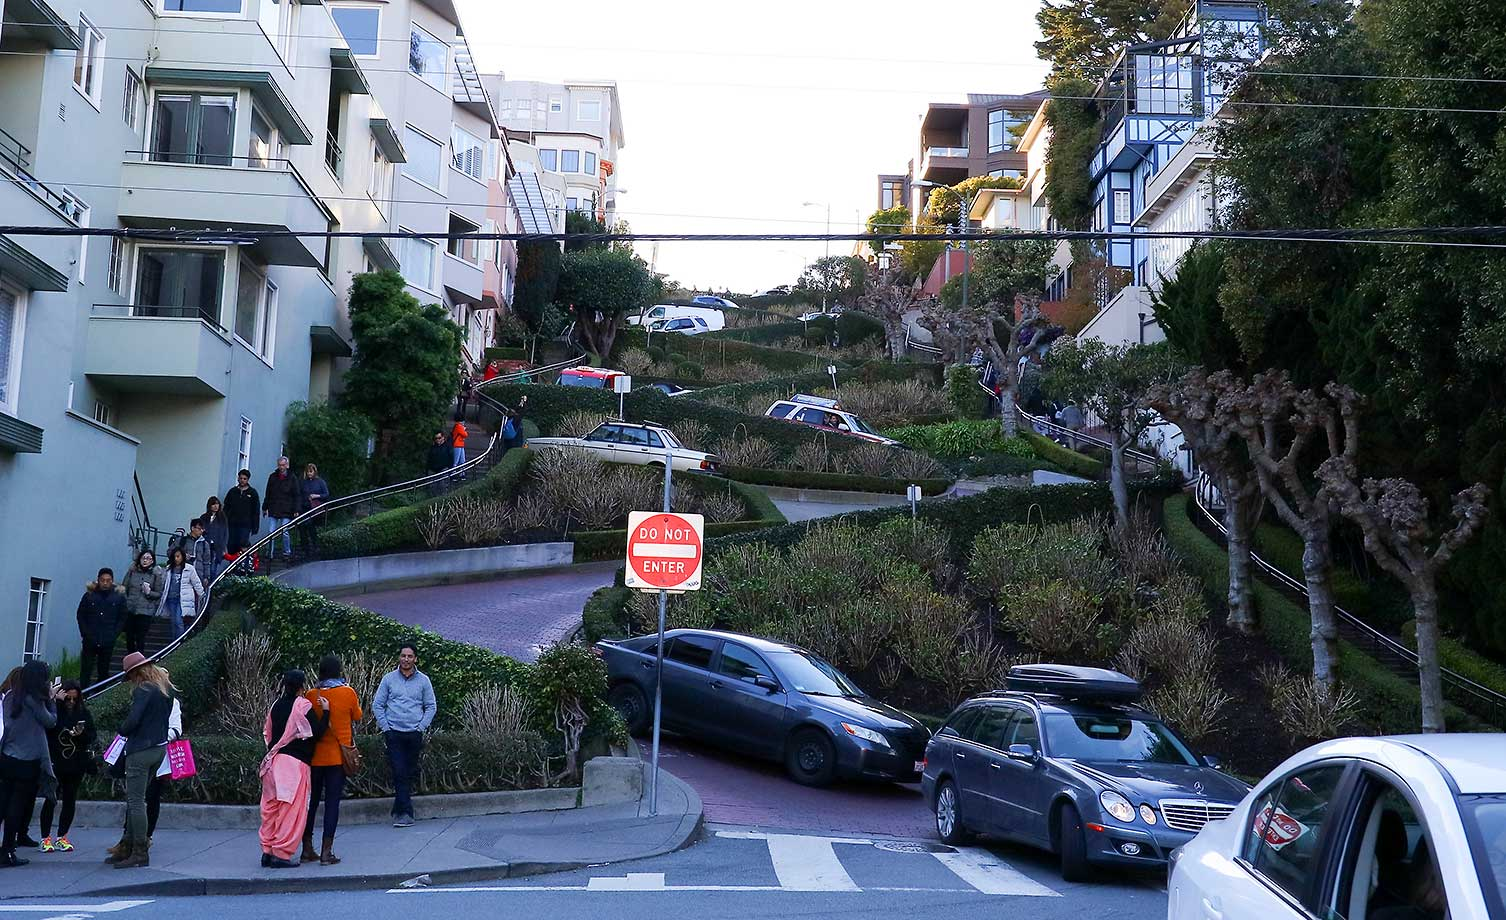 San Francisco's very crooked and busy Lombard Street full of cars and tourists in the days before Super Bowl 50.